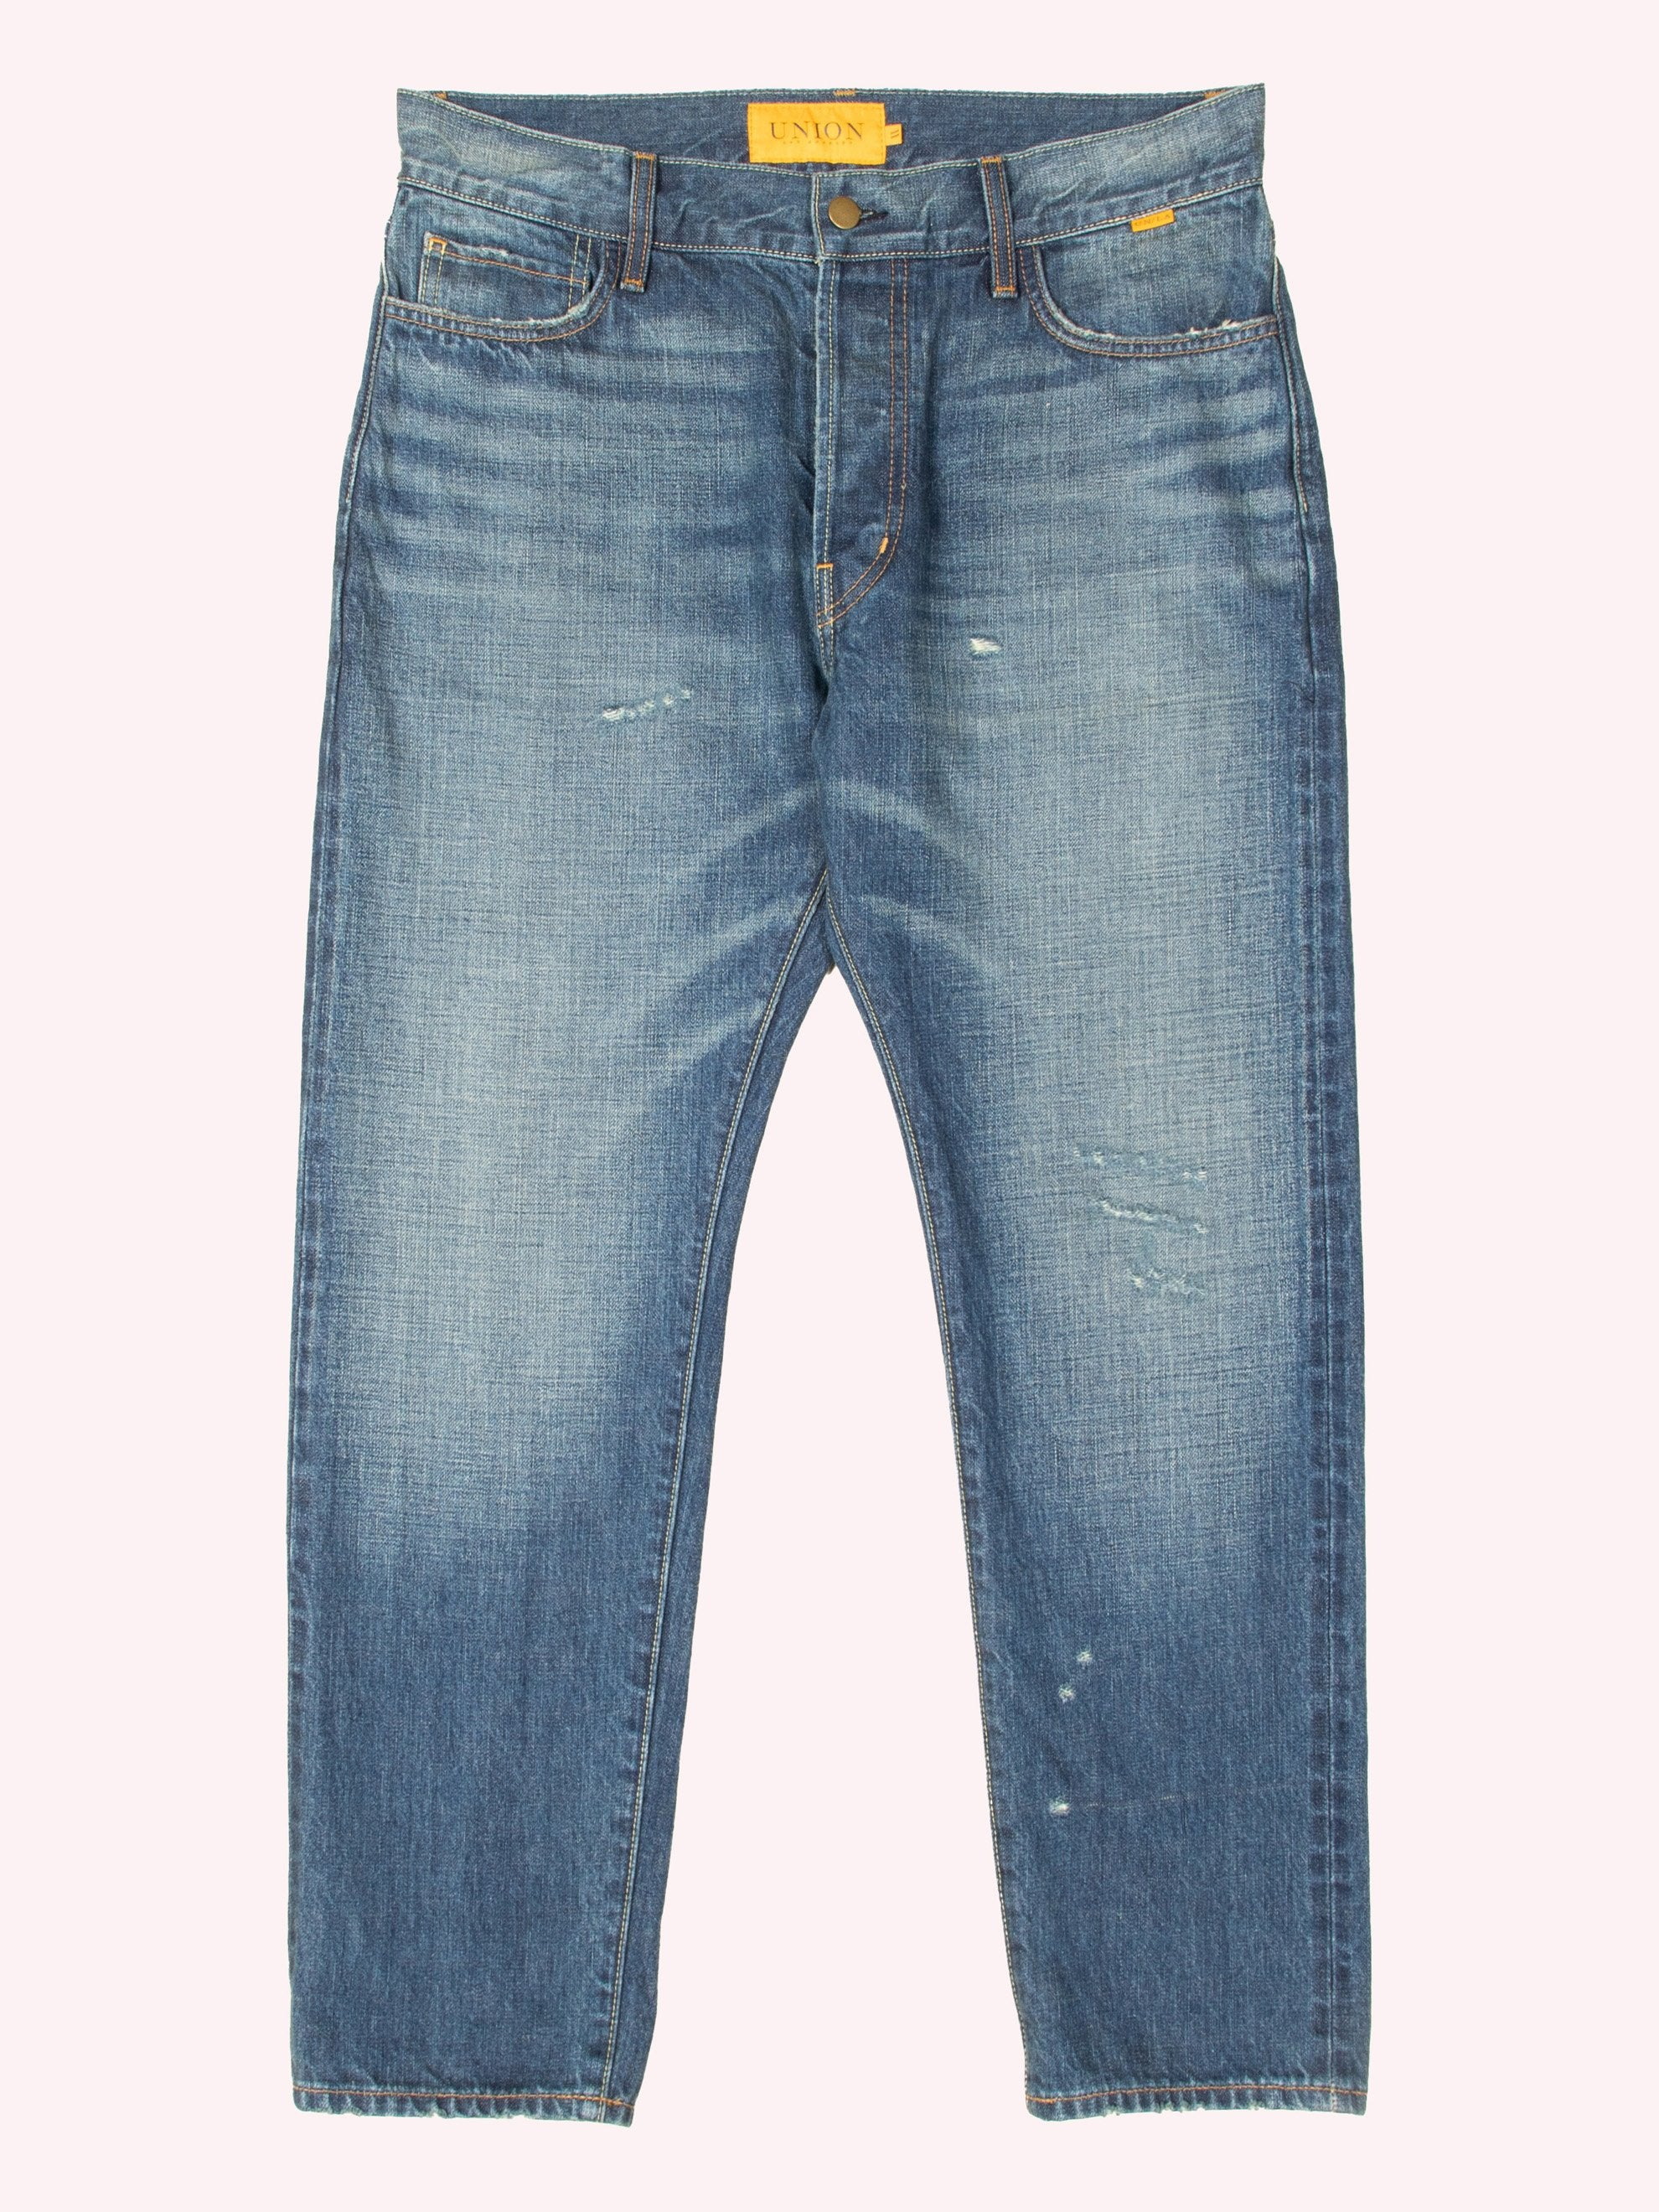 Indigo Union Denim 1